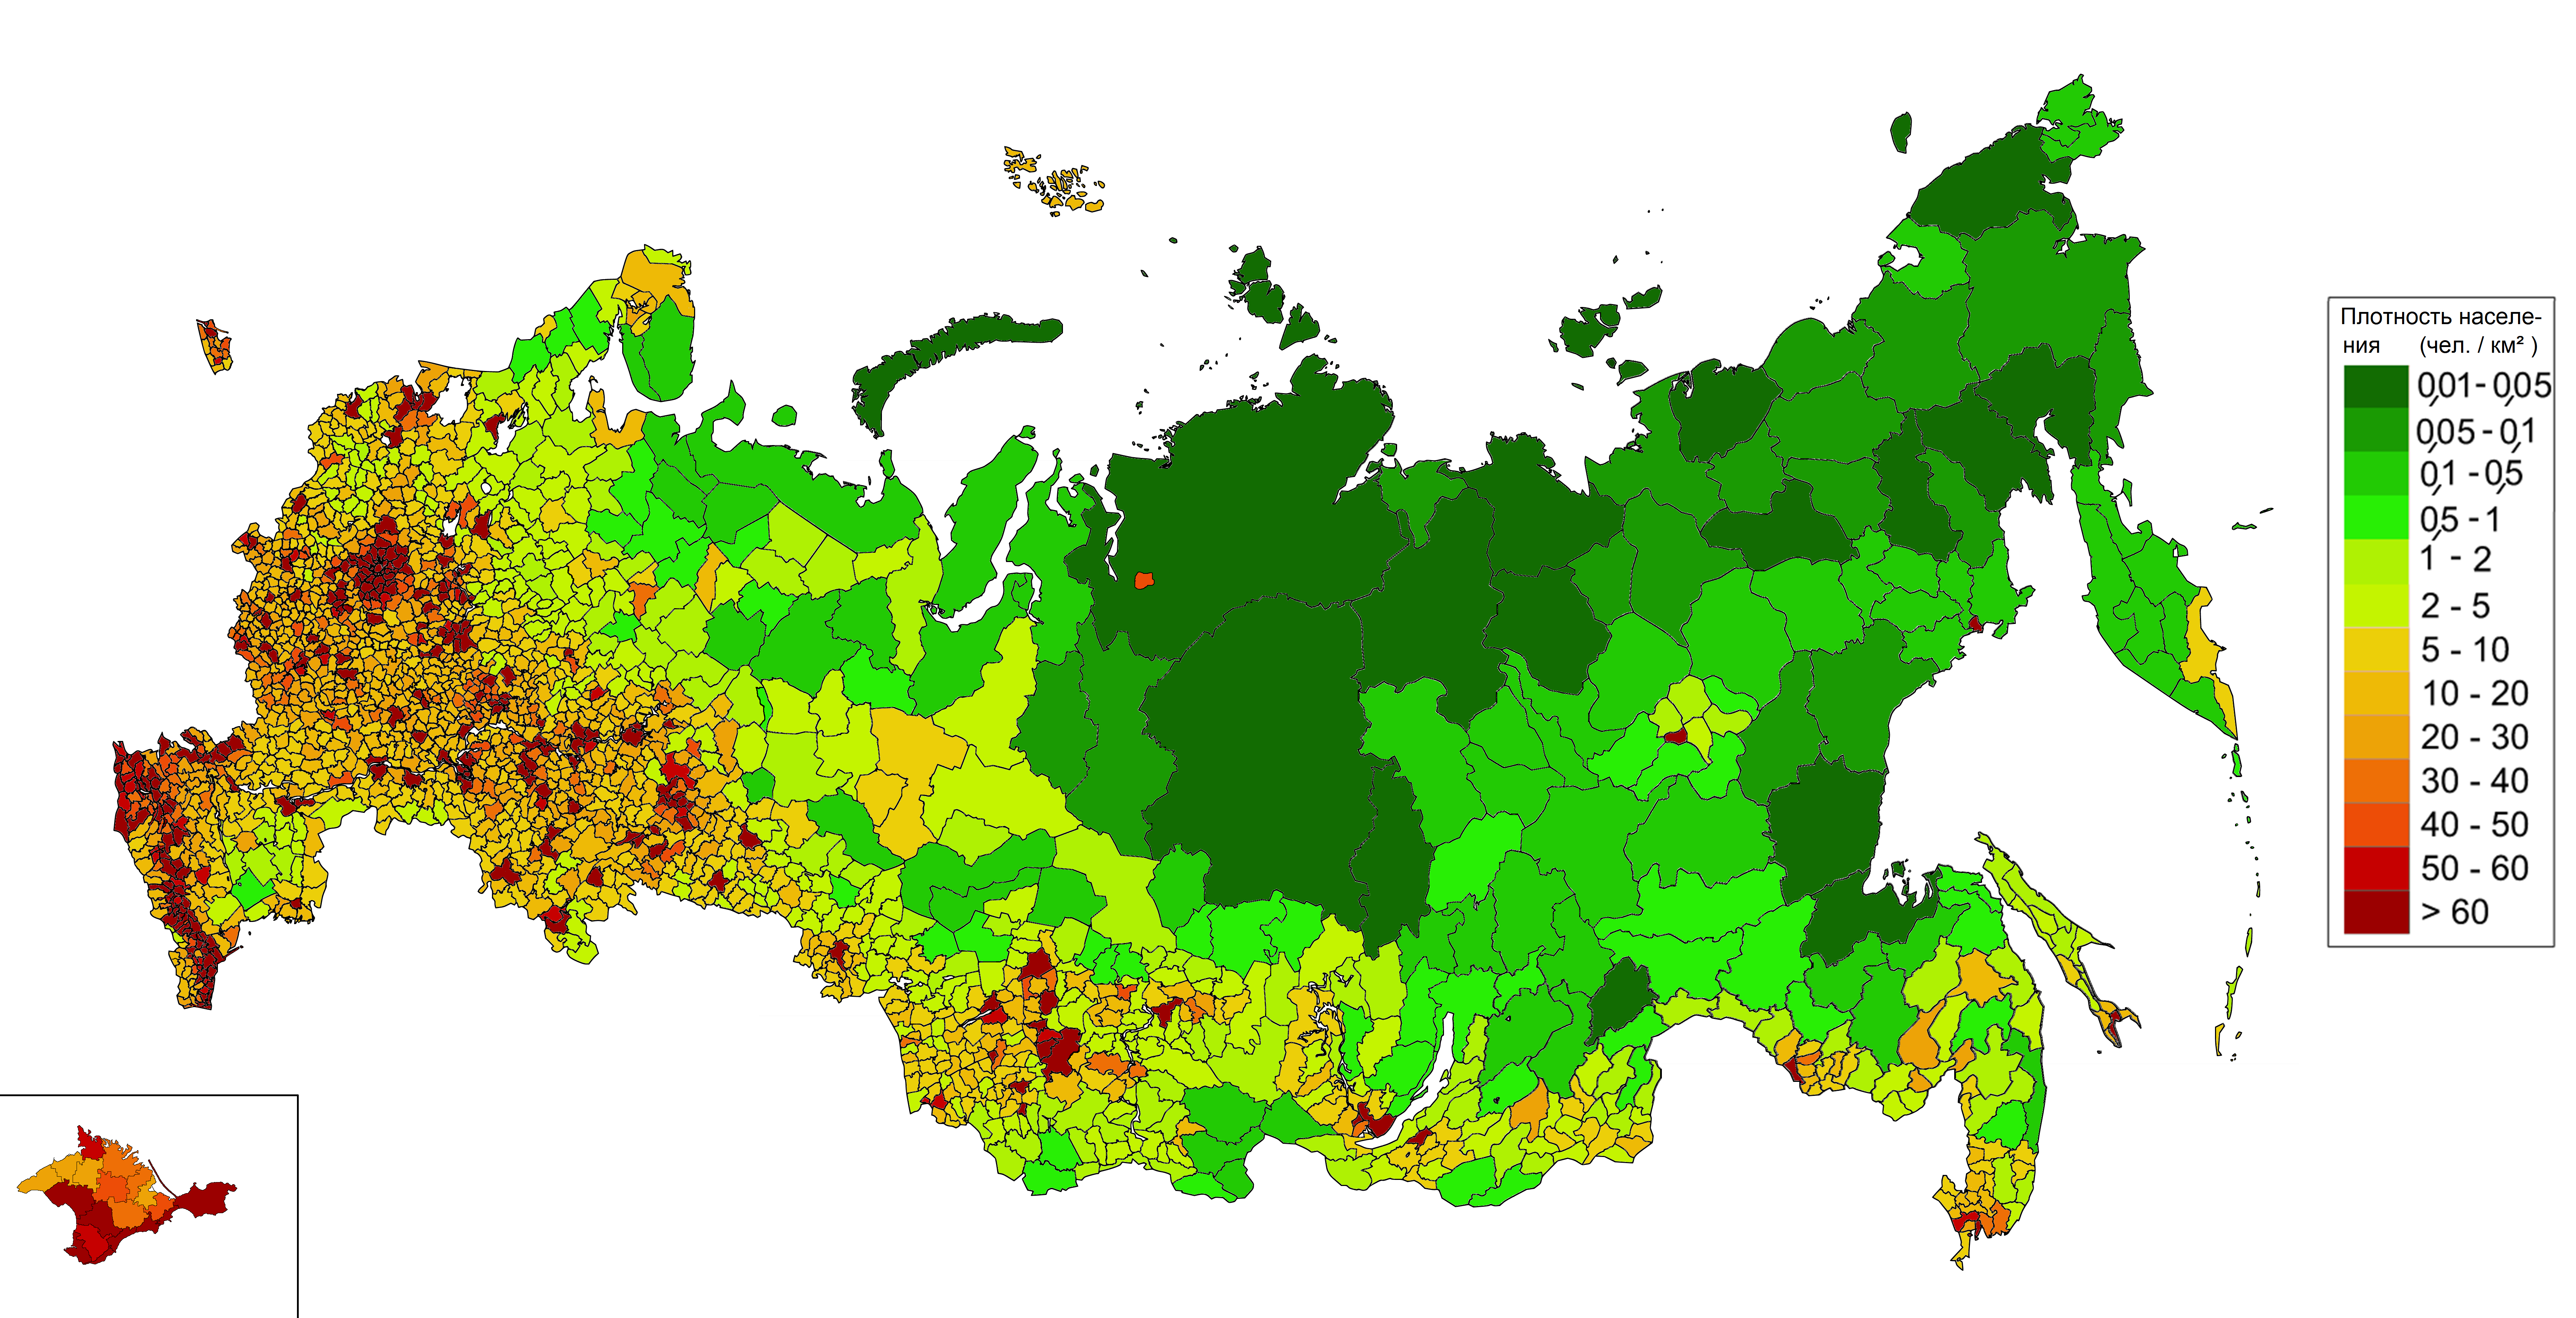 Russia Population Density Map Russia Population Density Detailed Map [7200x3684] : MapPorn